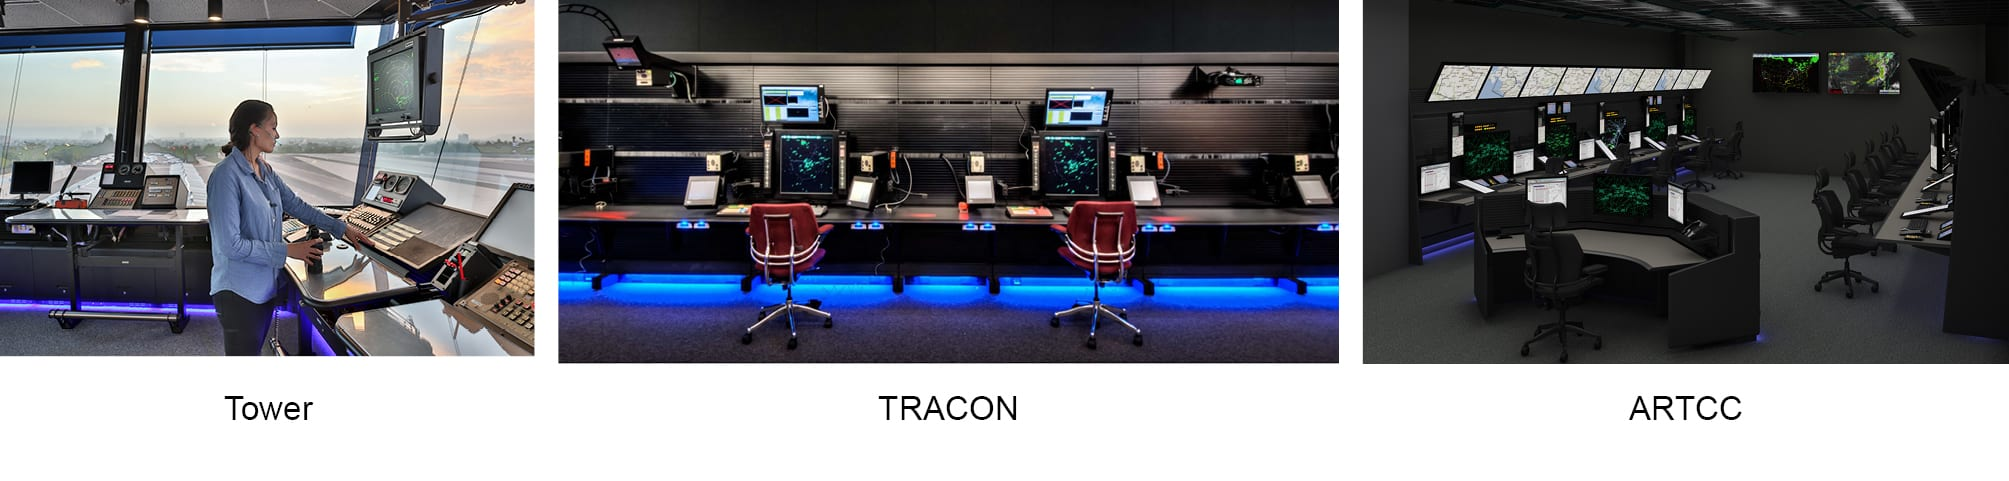 ATC Interior Team Environments